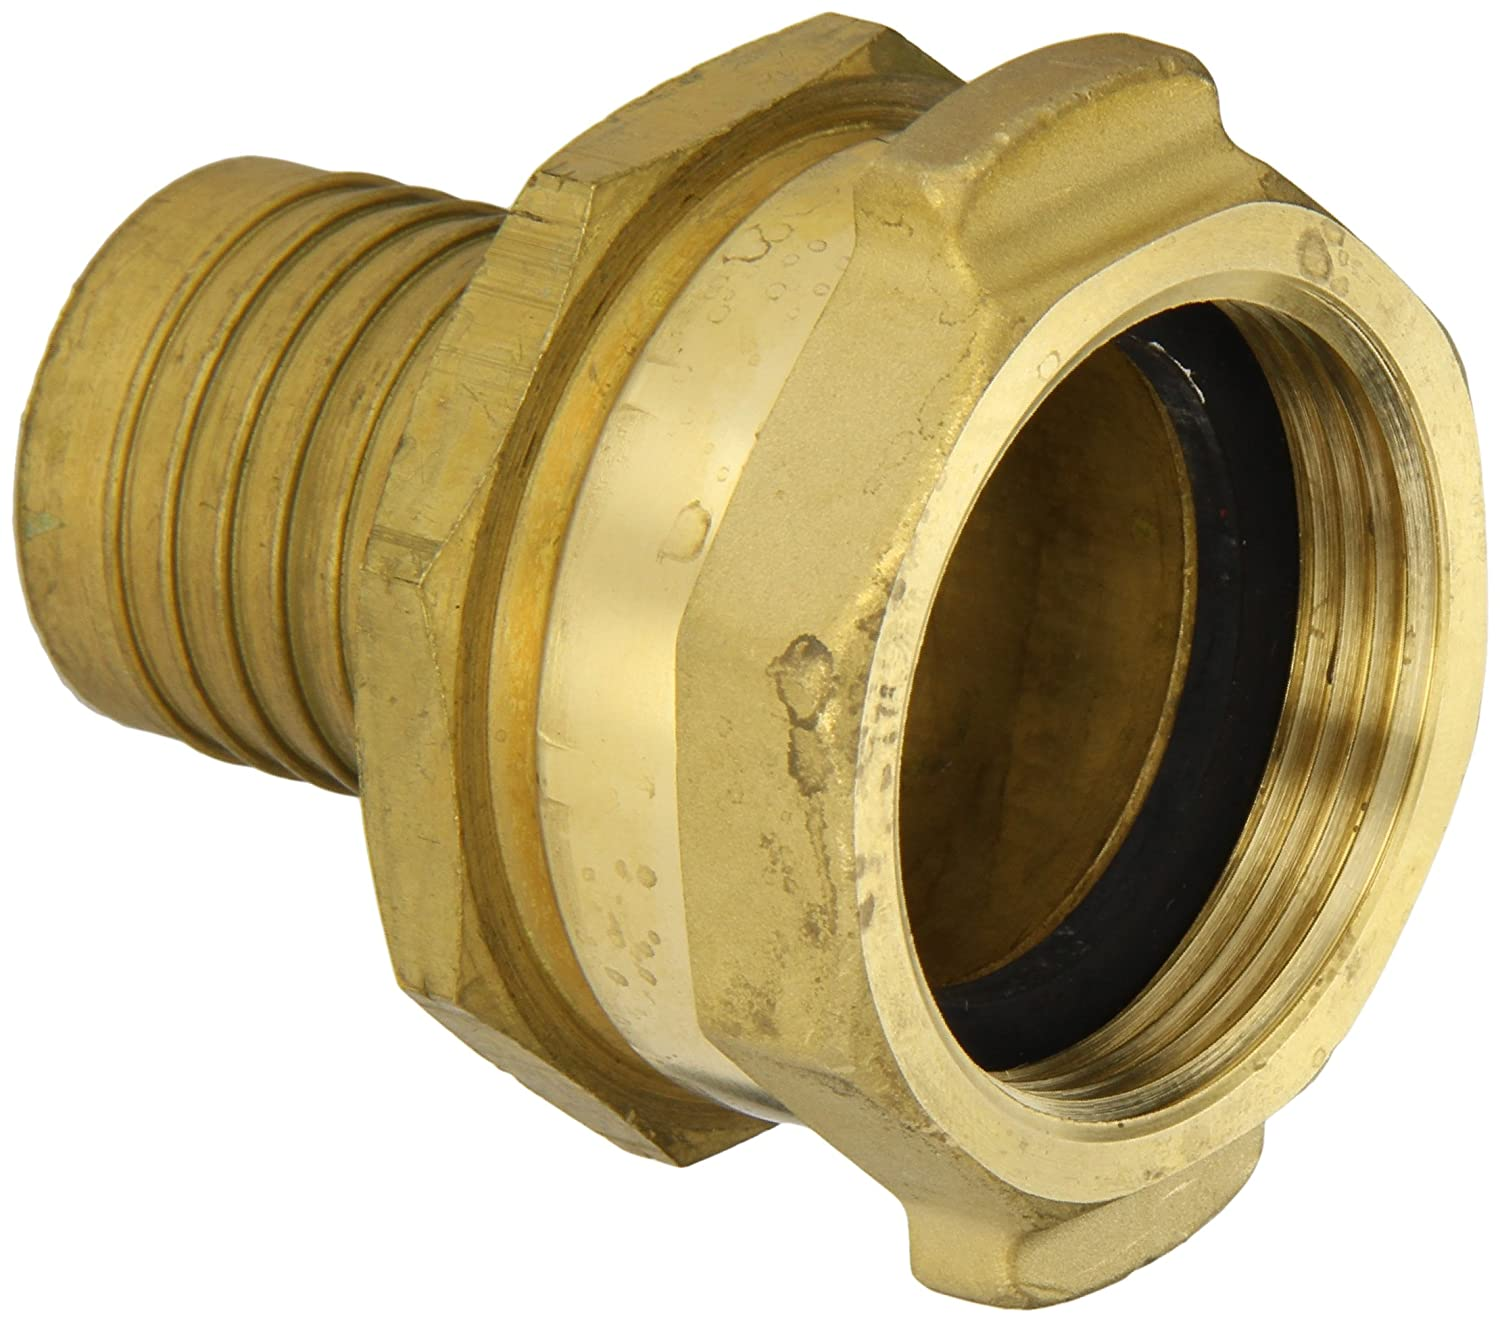 1-3//8 NPSH Female x 1-3//8 Hose ID Barbed 1-3//8 NPSH Female x 1-3//8 Hose ID Barbed Dixon Valve /& Coupling Dixon H5271-BU Brass Scovill Style Holedall Fitting Internally Expanded Permanent Coupling